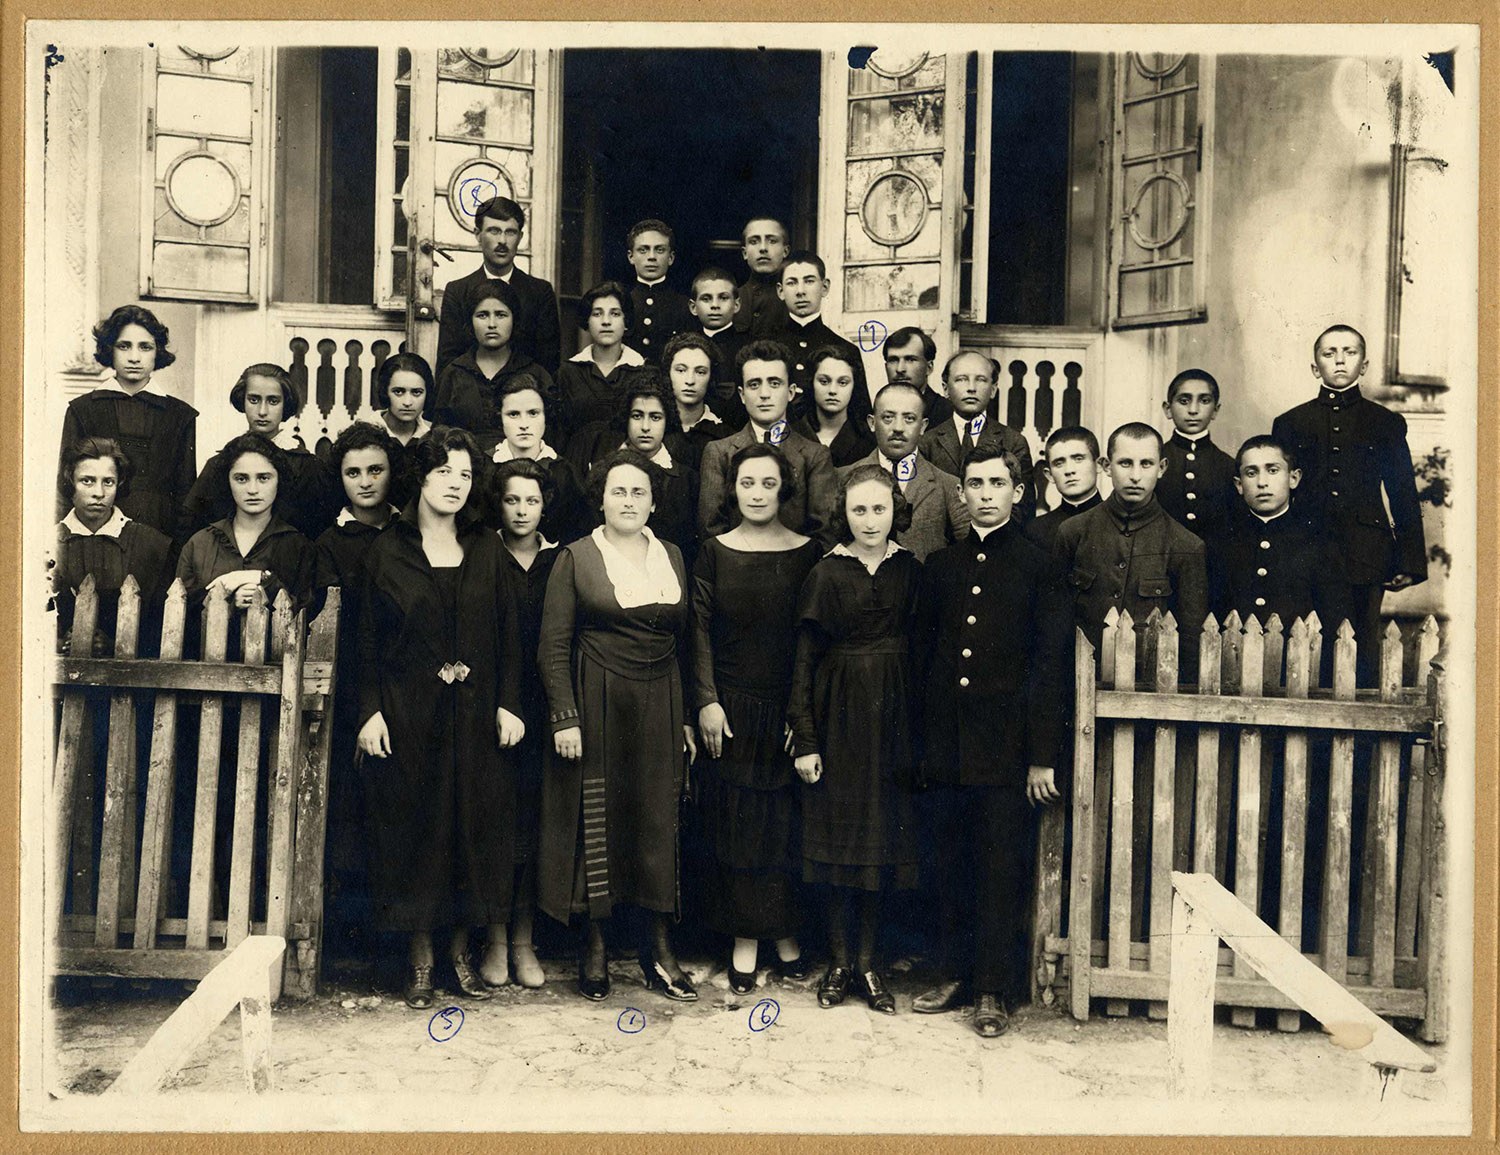 Graduating class of the Lipcani (Moldova) Jewish High School in 1926. Ginda Roseblatt, wearing the white collar in the centre, is the school's principal and teaches Hygiene.